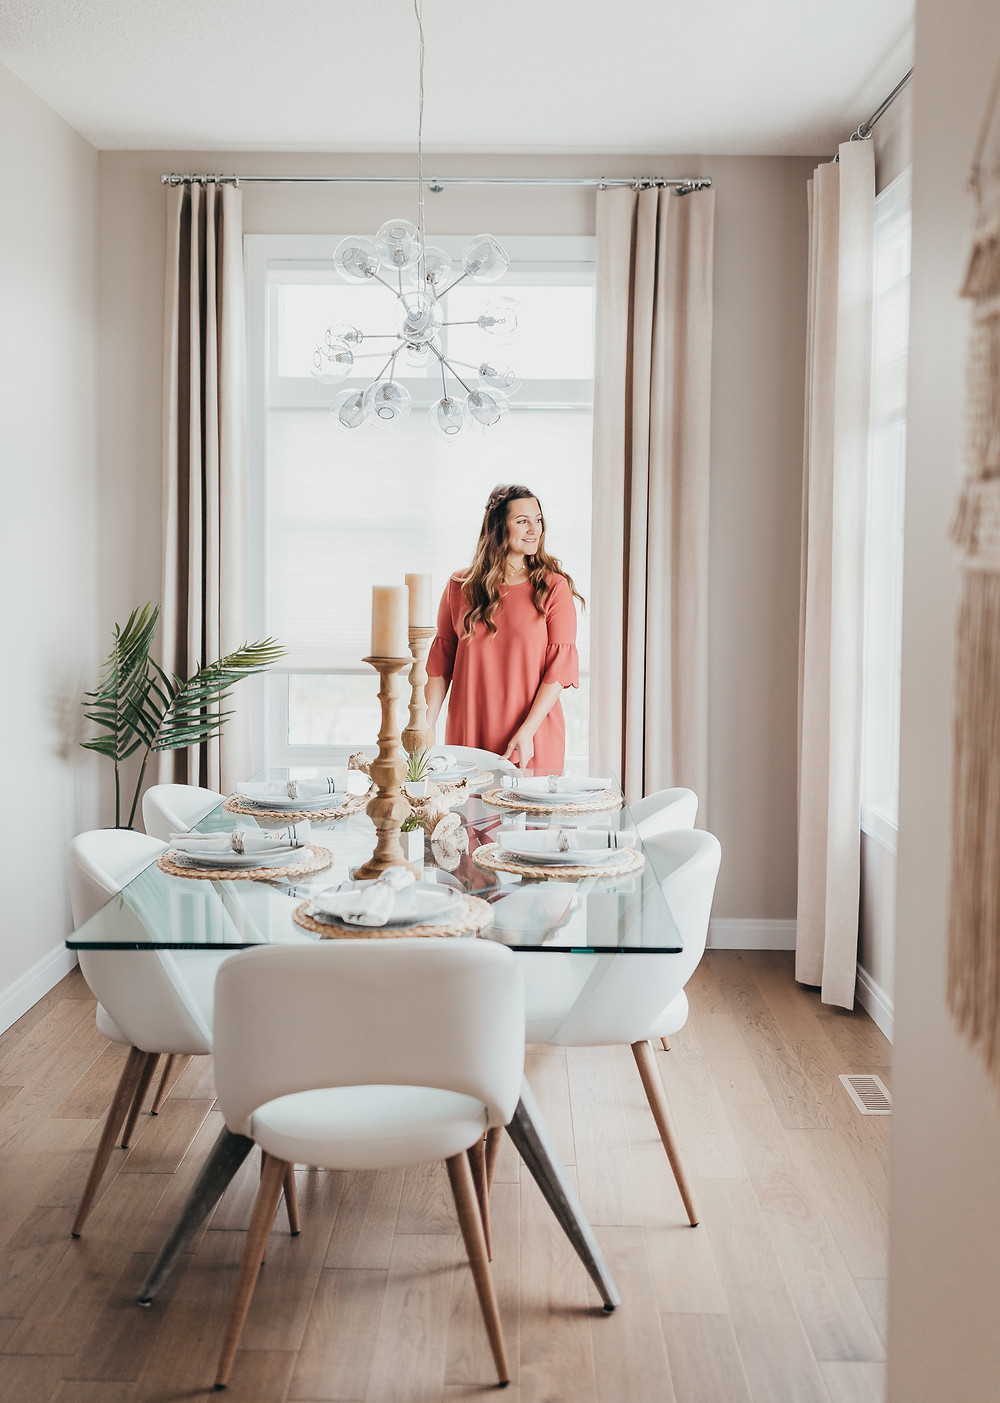 A girl standing in a modern dining room setting the table.